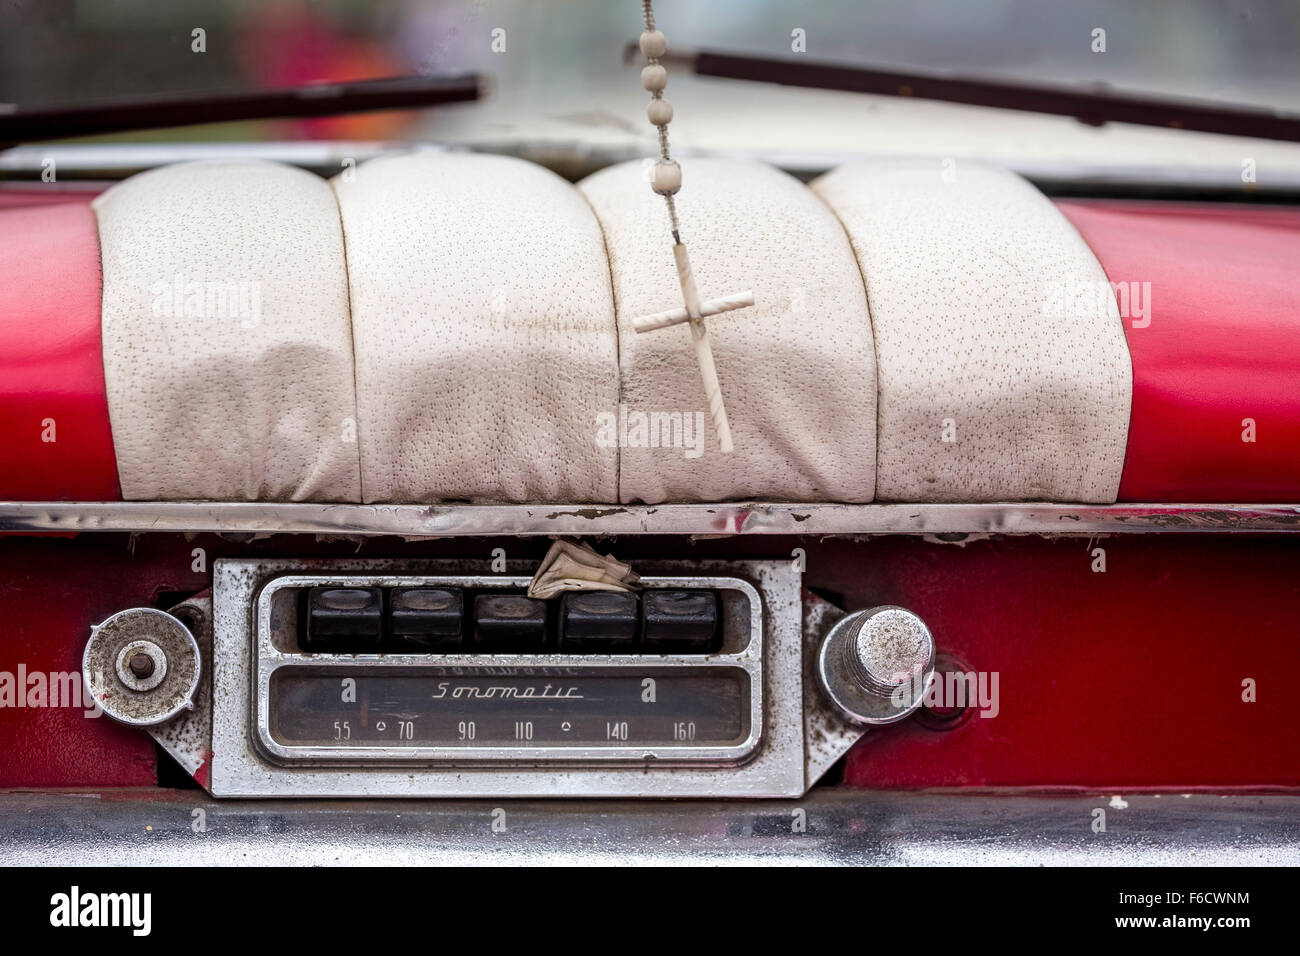 Sonnomatic old car radio in the dashboard of an old Buick road cruiser, vintage cars on the streets, age American, - Stock Image